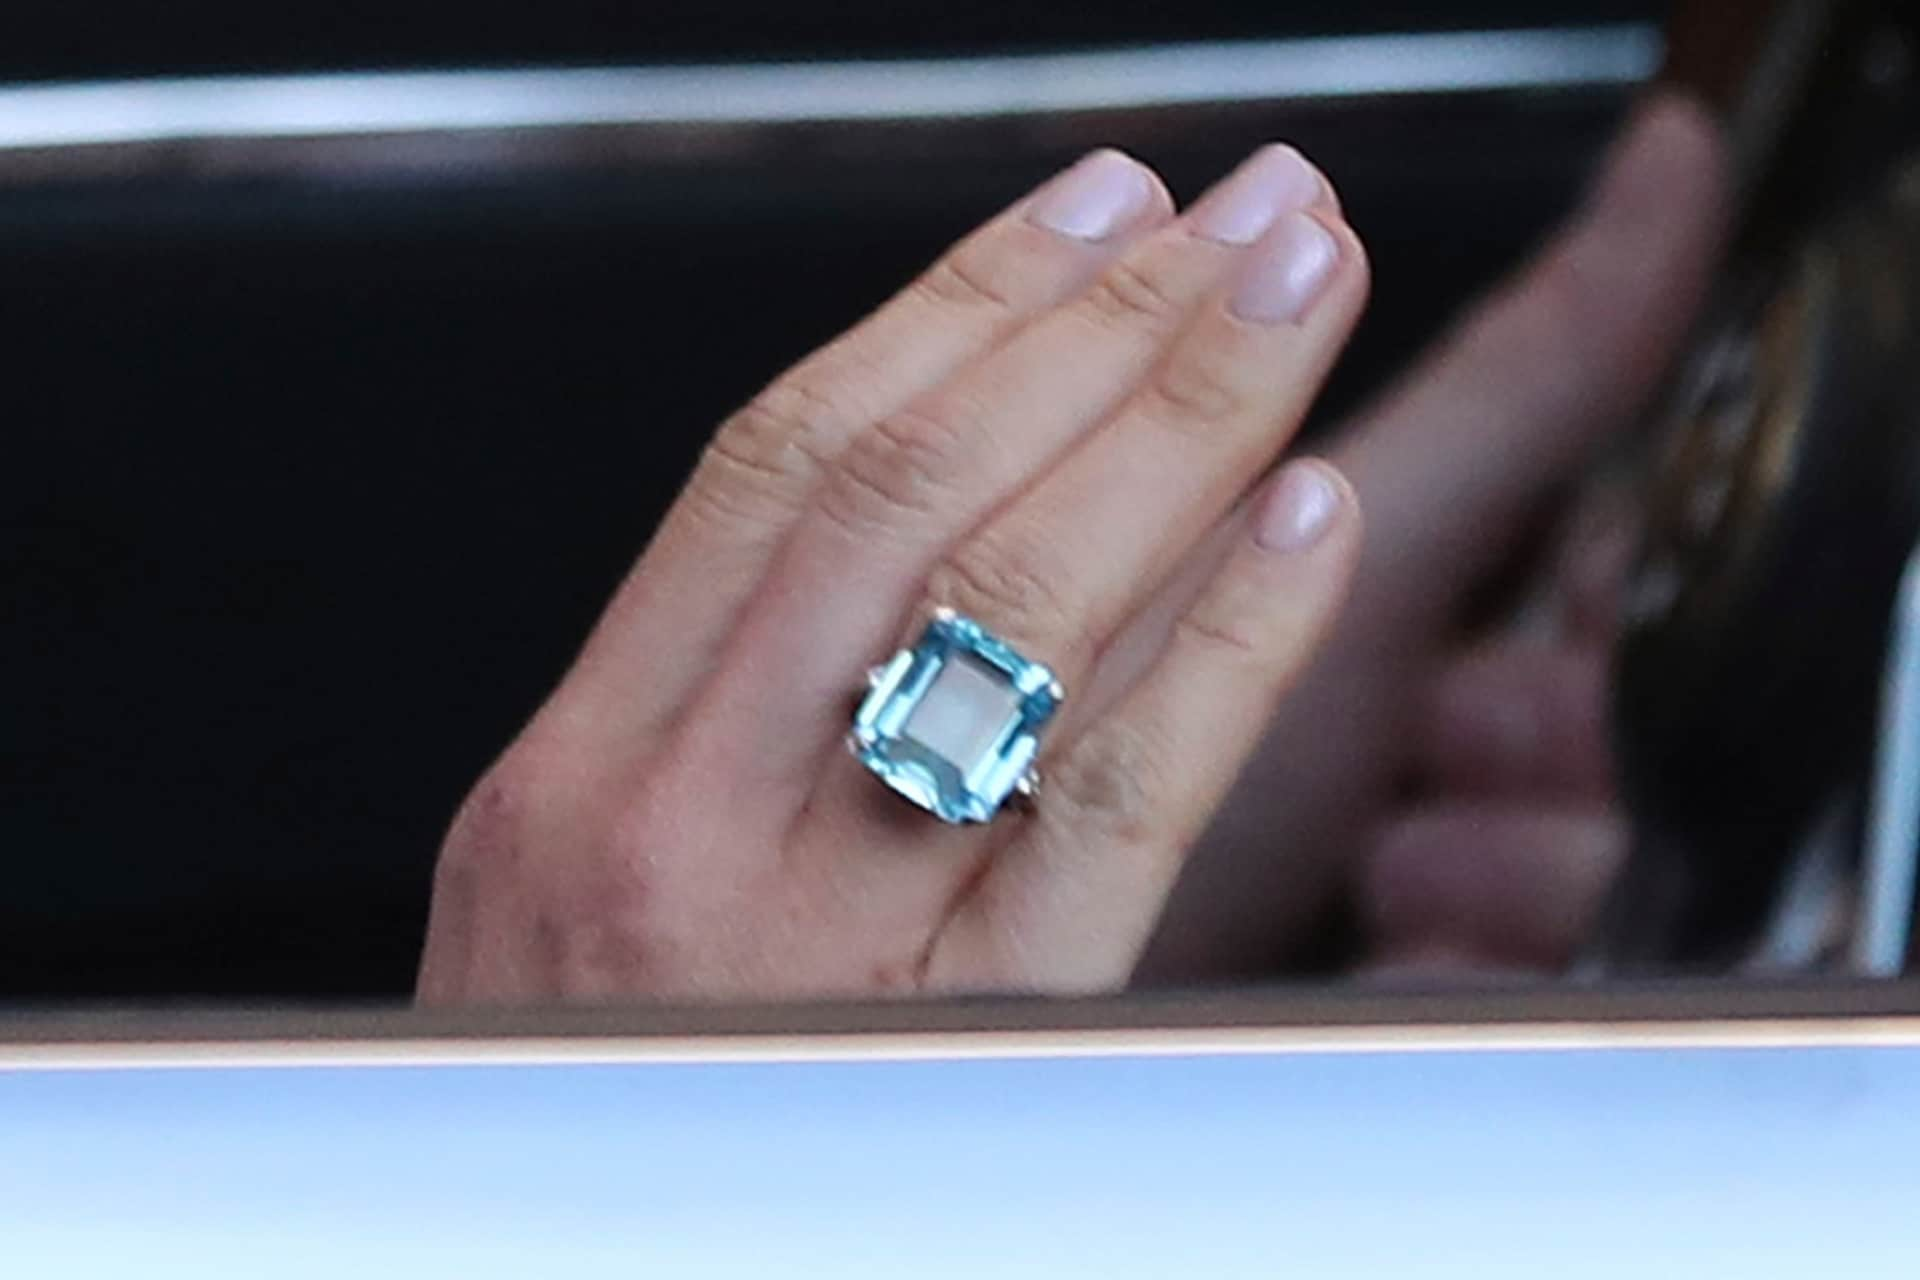 Princess Diana's aquamarine ring worn by Meghan Markle. Image credit: Getty Images.